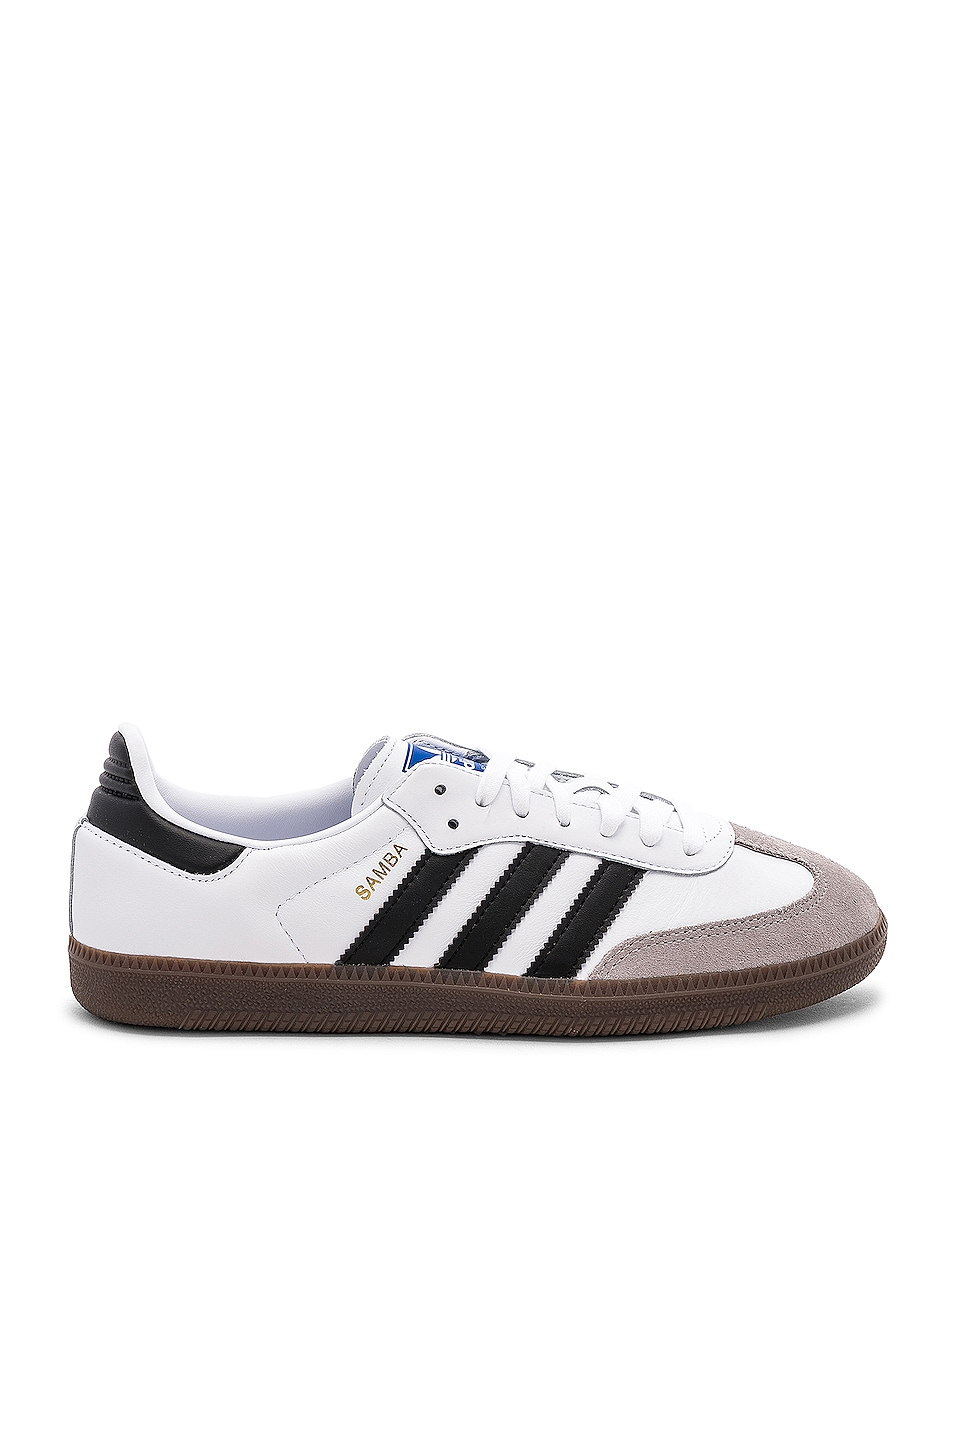 adidas Originals Samba in White & Black & Clear Granite